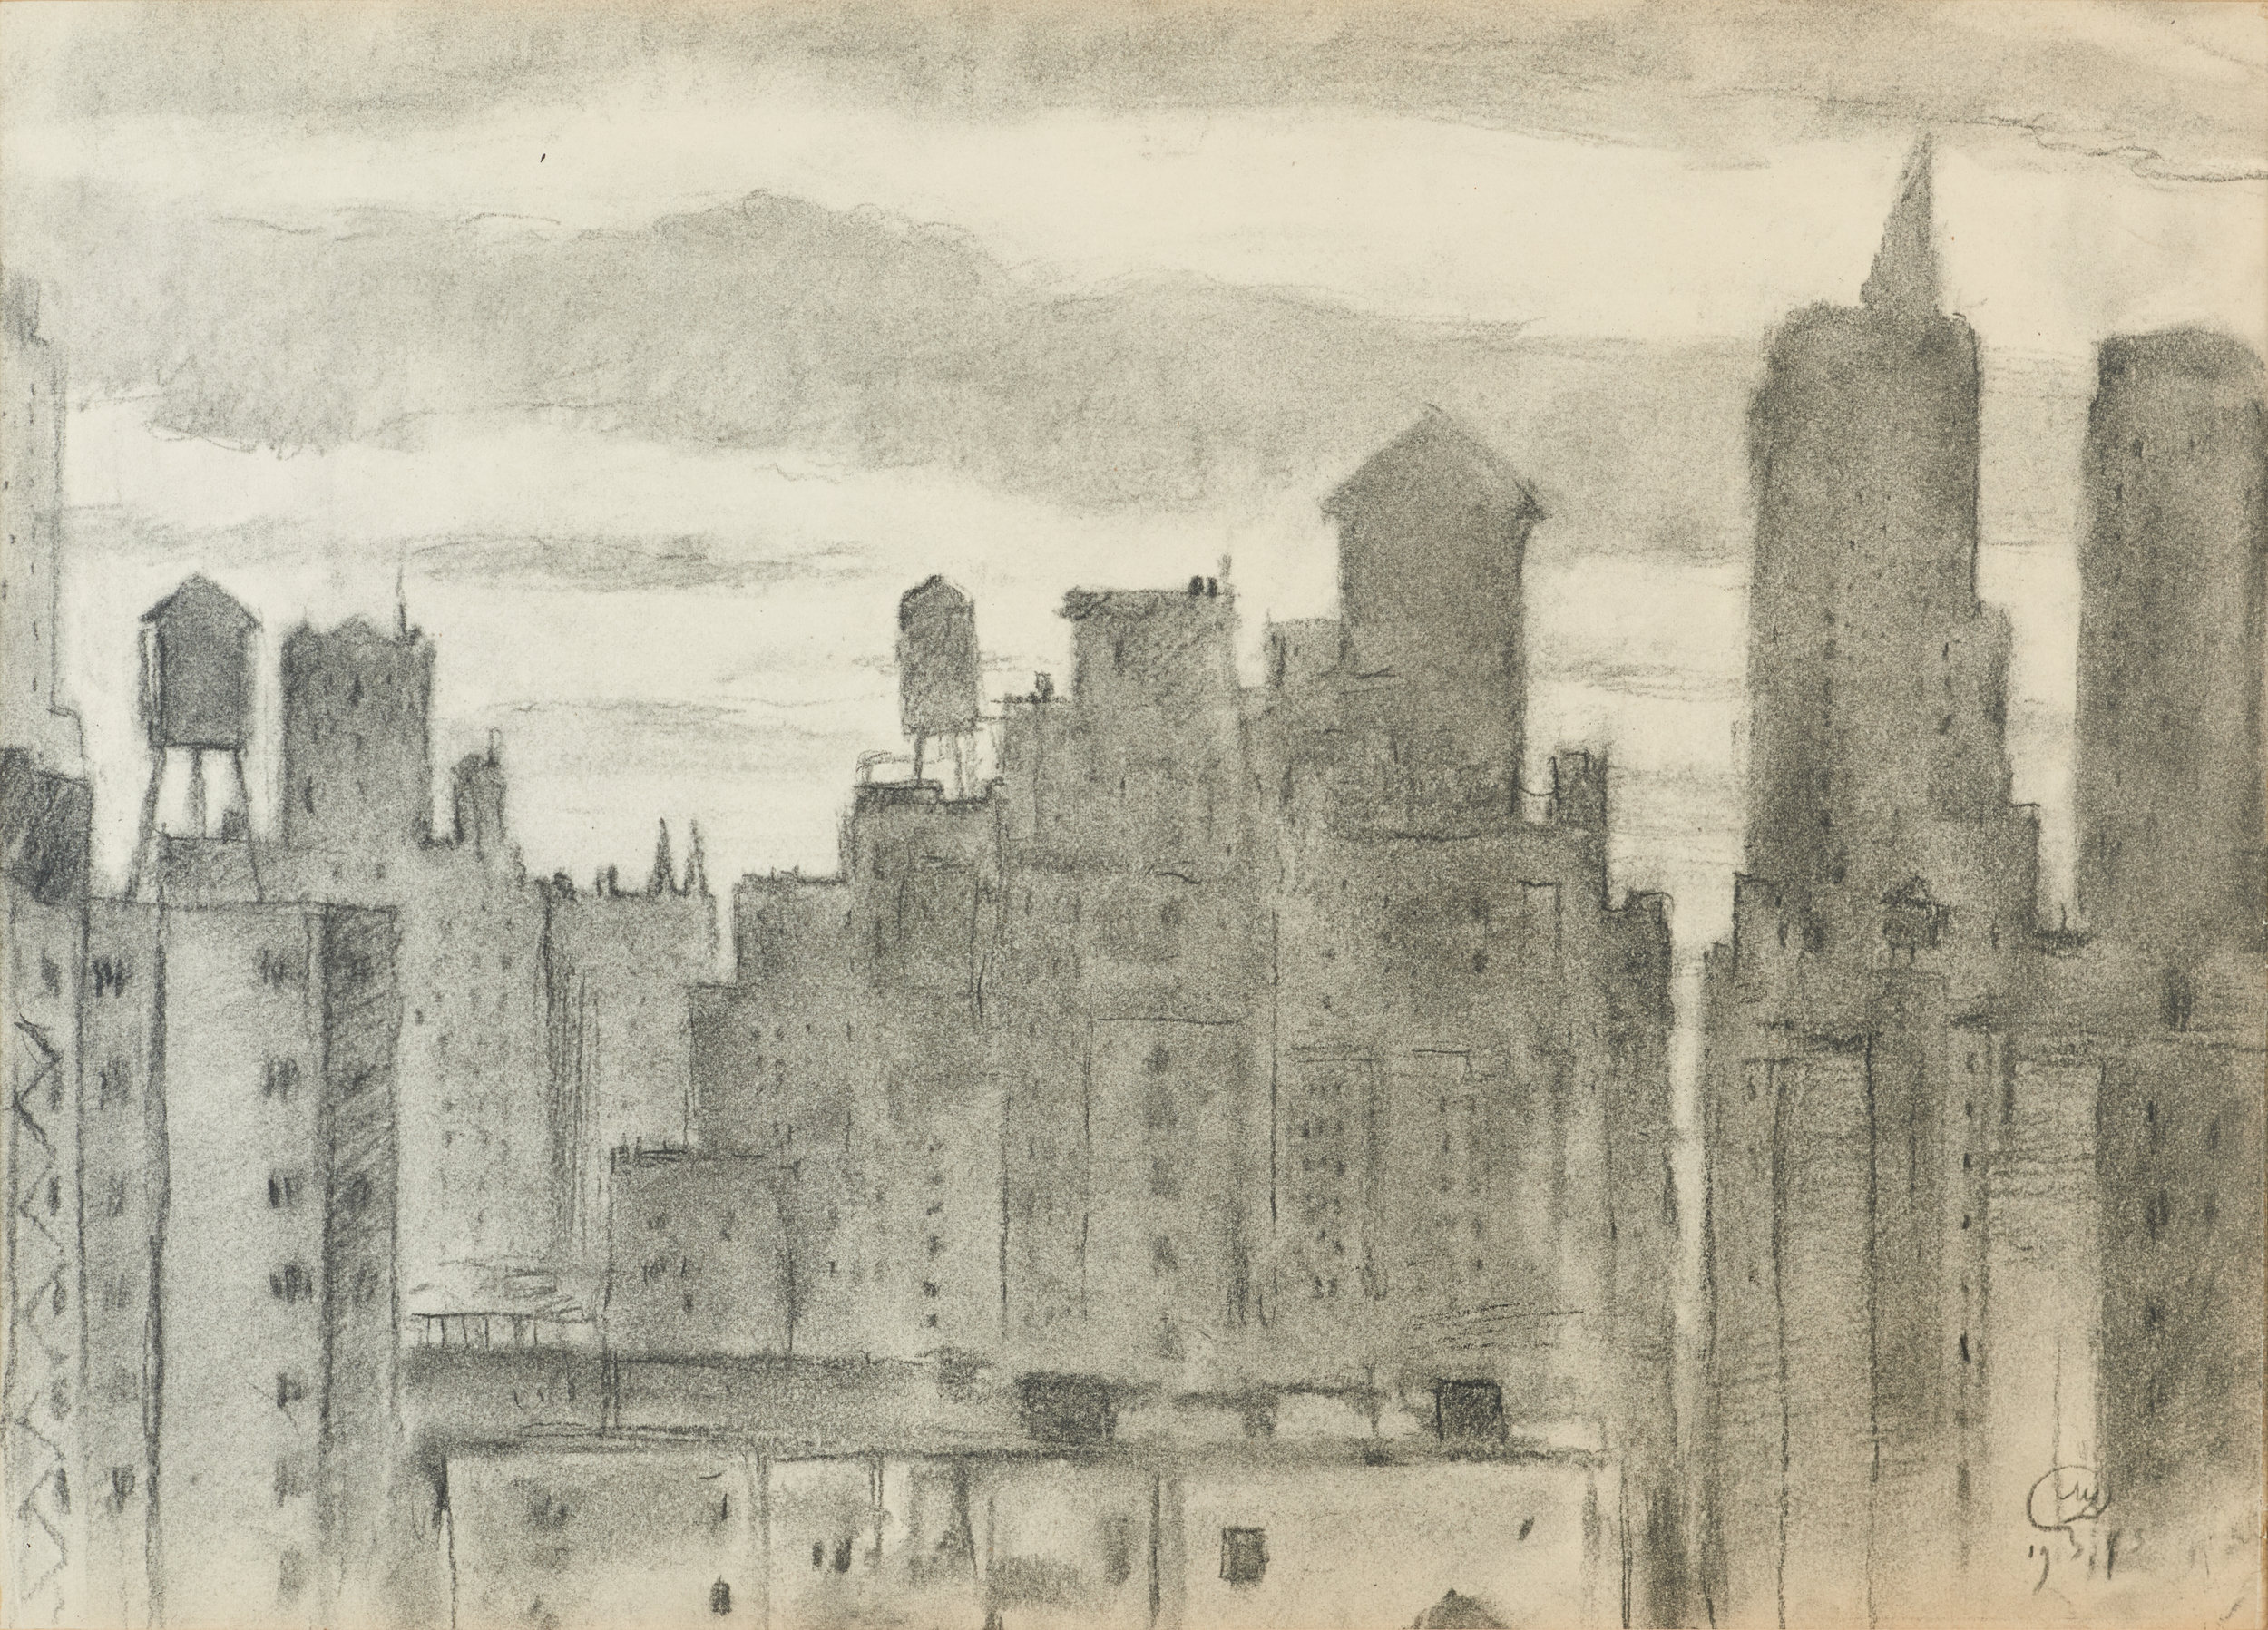 View of a Town, signed and dated 1943. Charcoal on paper, 36 x 50 cm.